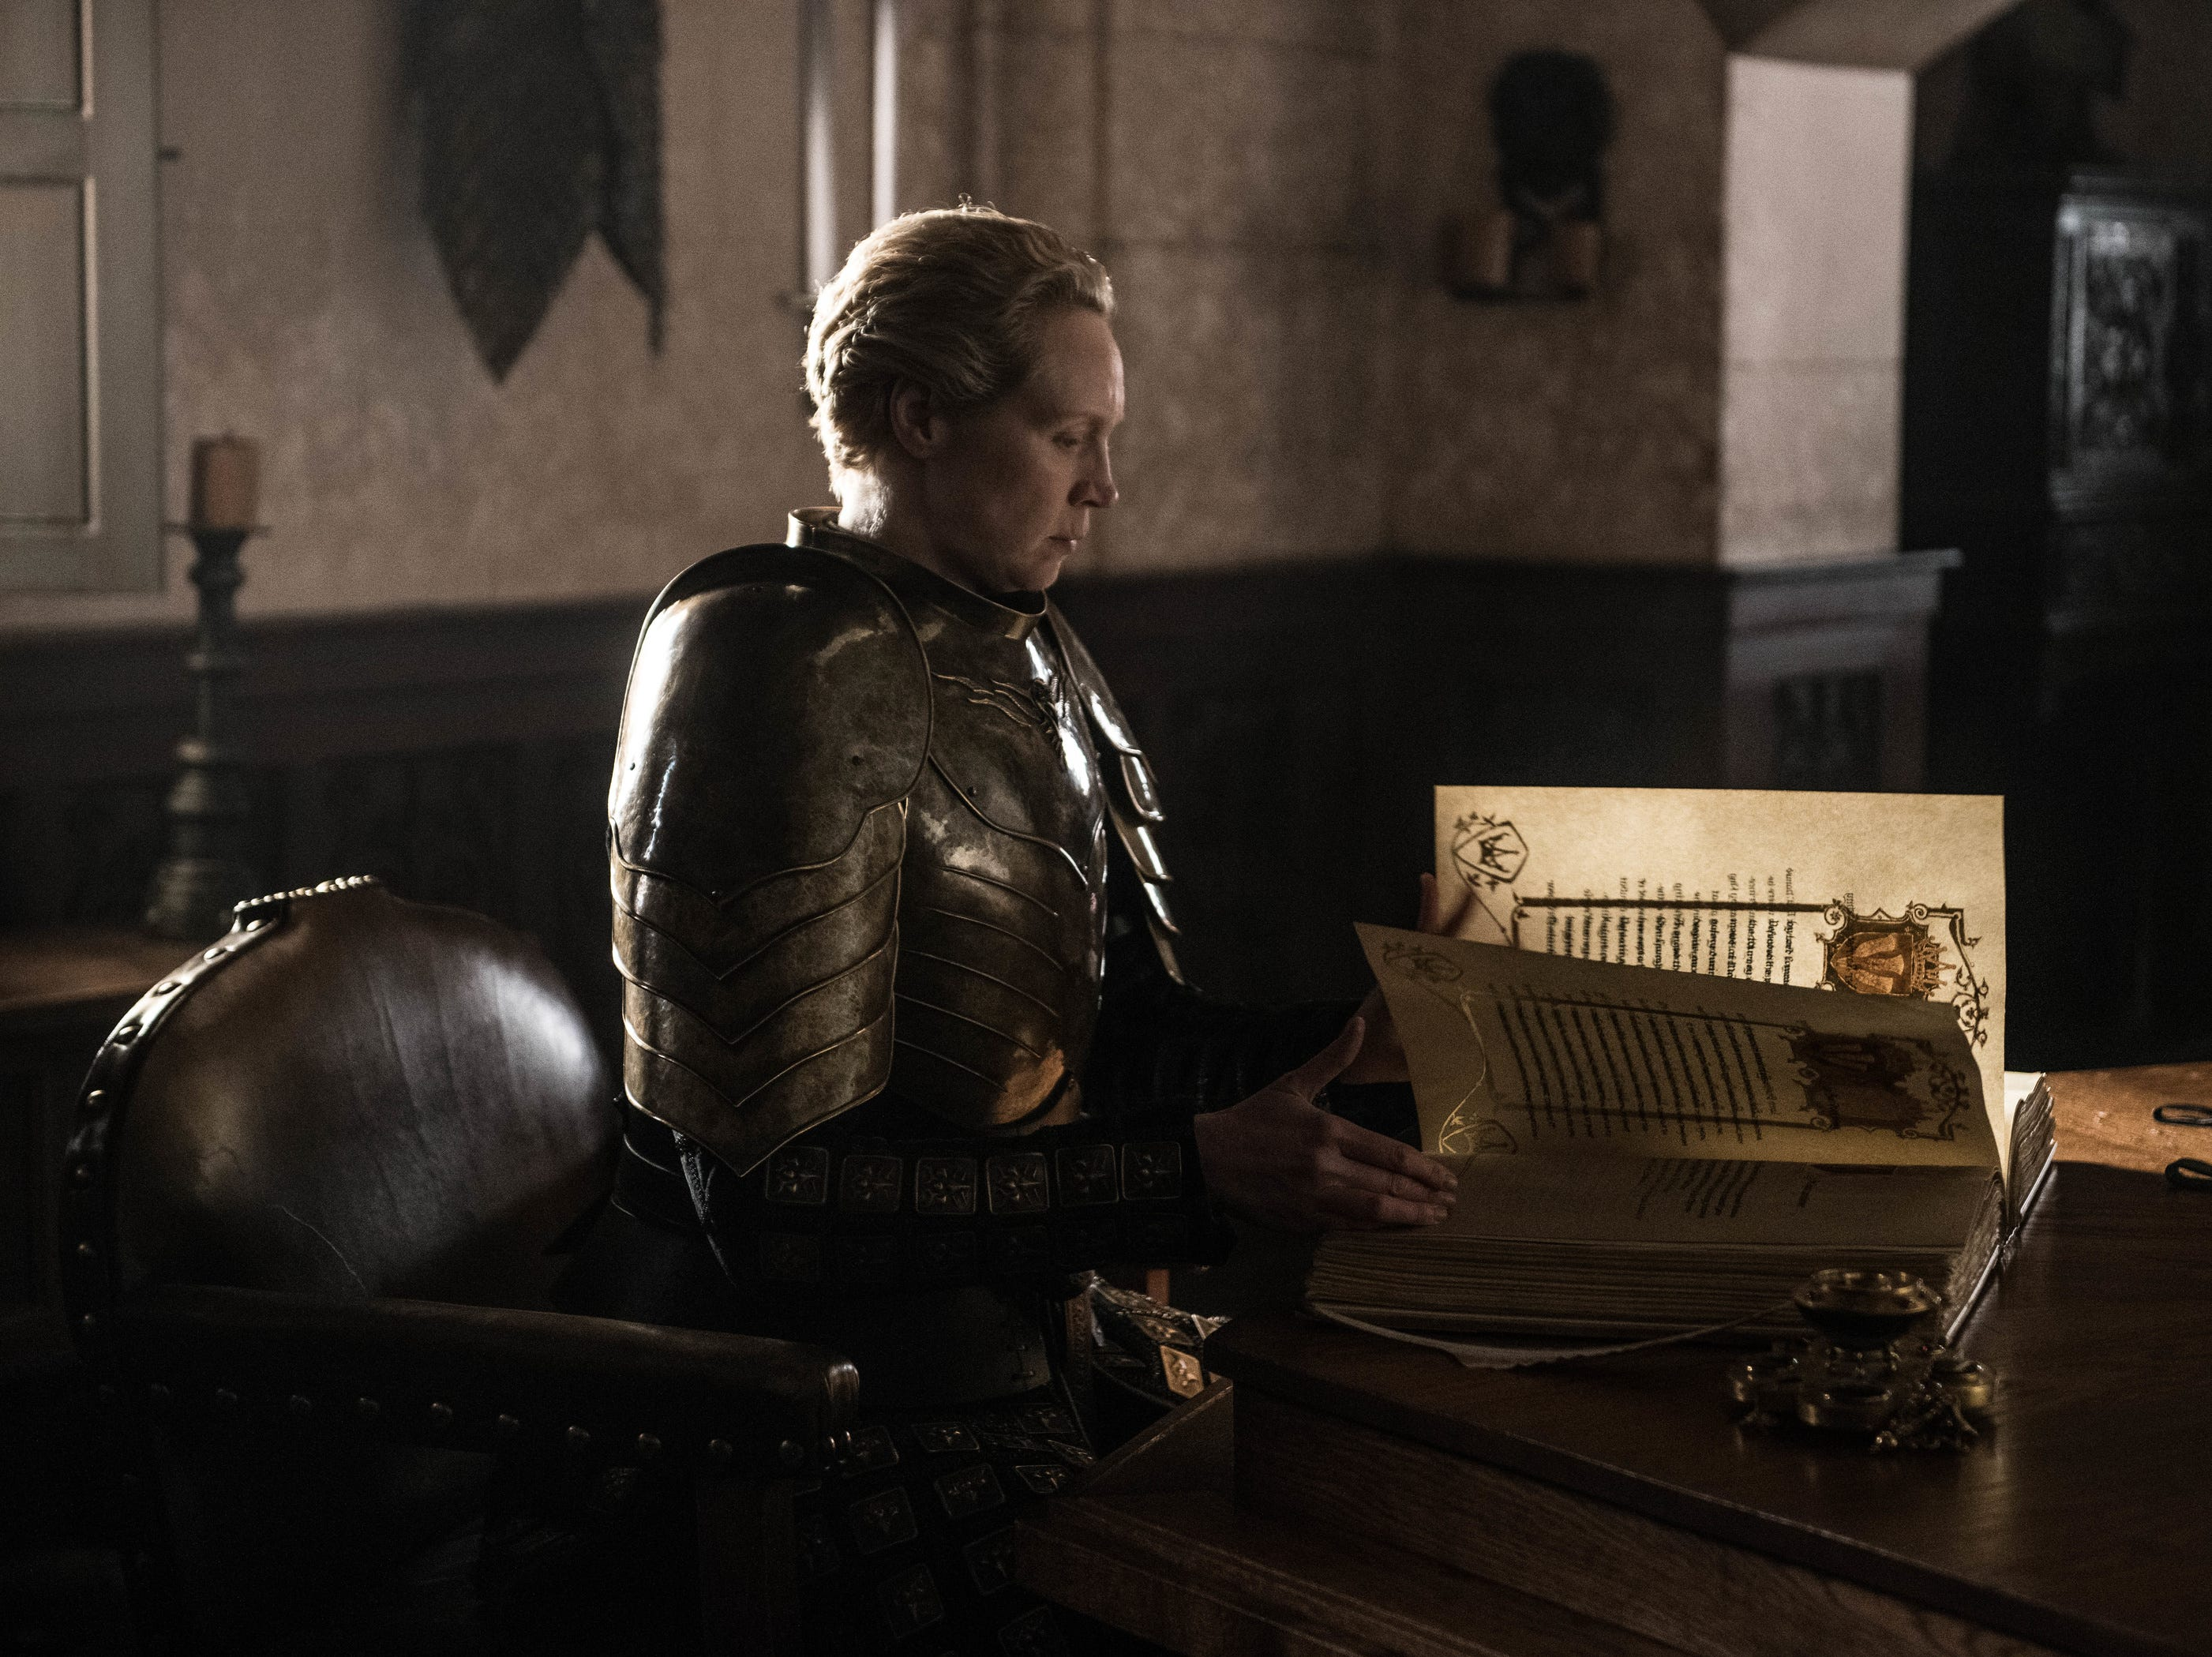 Brienne of Tarth (Gwendoline Christie) records the later deeds of Jaime Lannister's life.